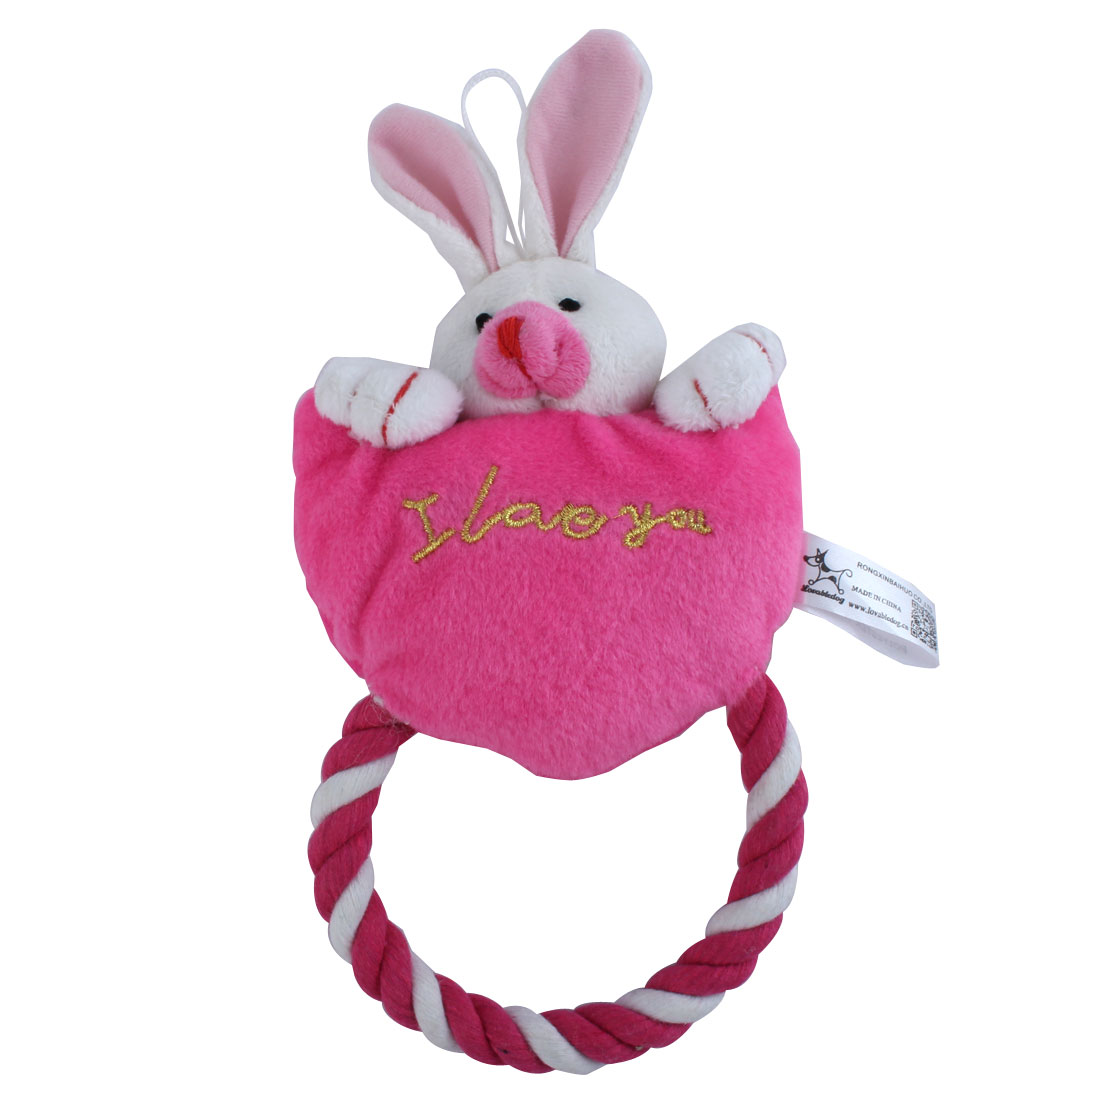 Plush-Rabbit-Pattern-Squeaky-Toy-for-Pet-Dog-Puppy